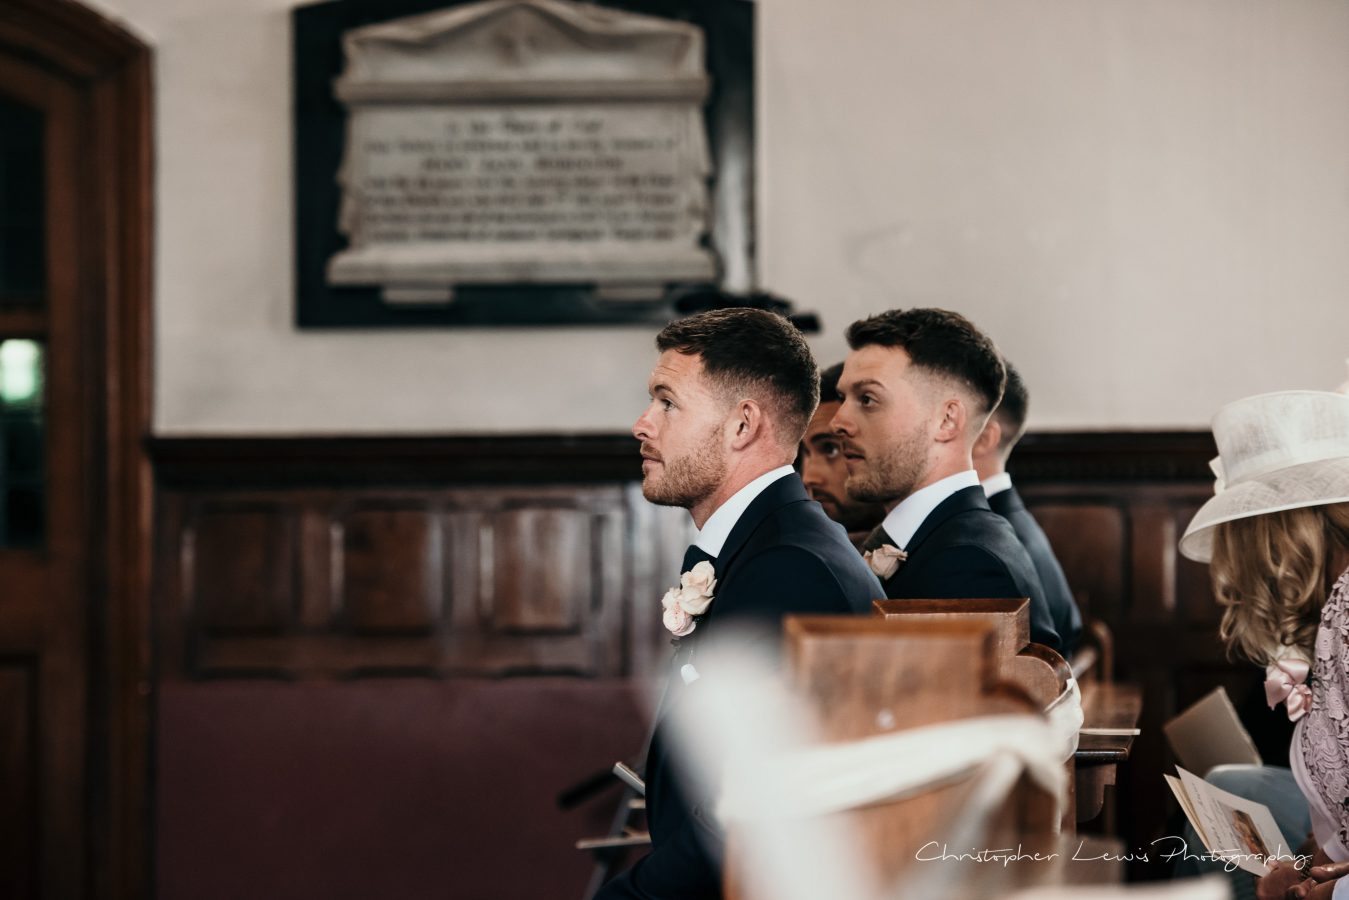 White-Hart-Lydgate-Wedding-Christopher-Lewis-Photography-58